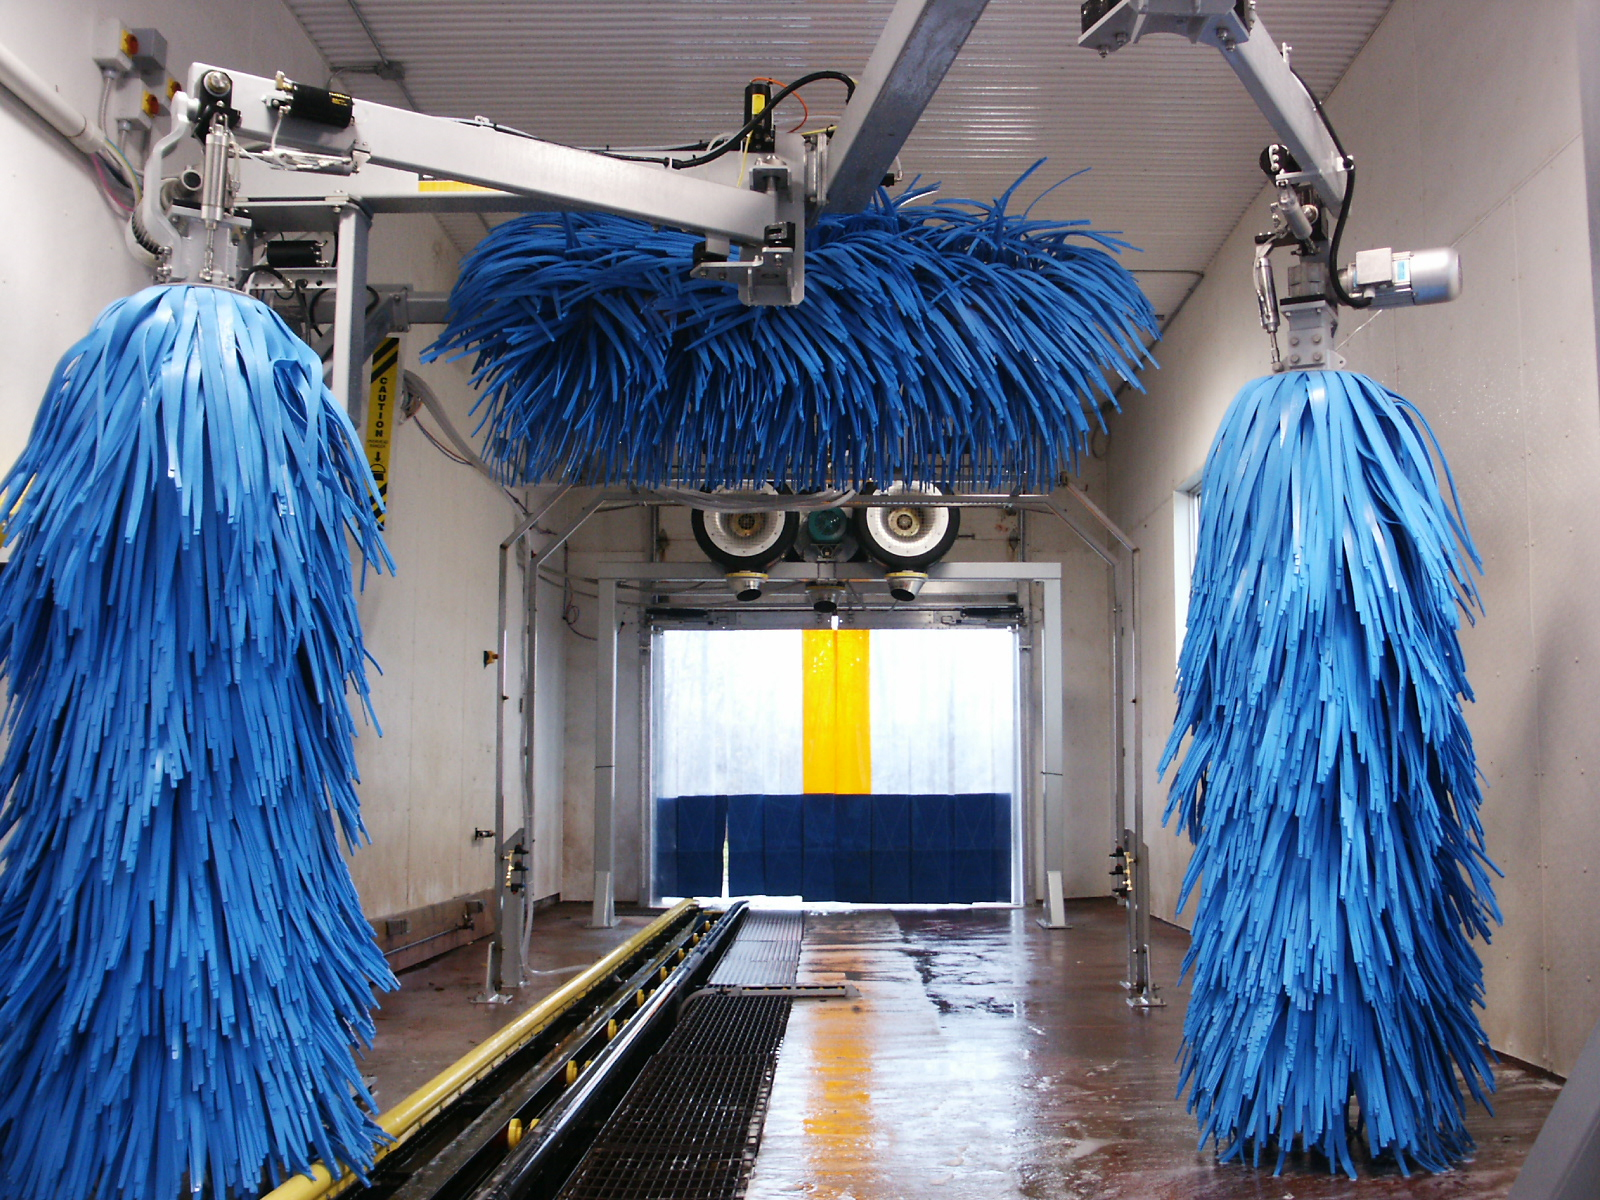 Tunnel Systems - Harrell's Car Wash Systems